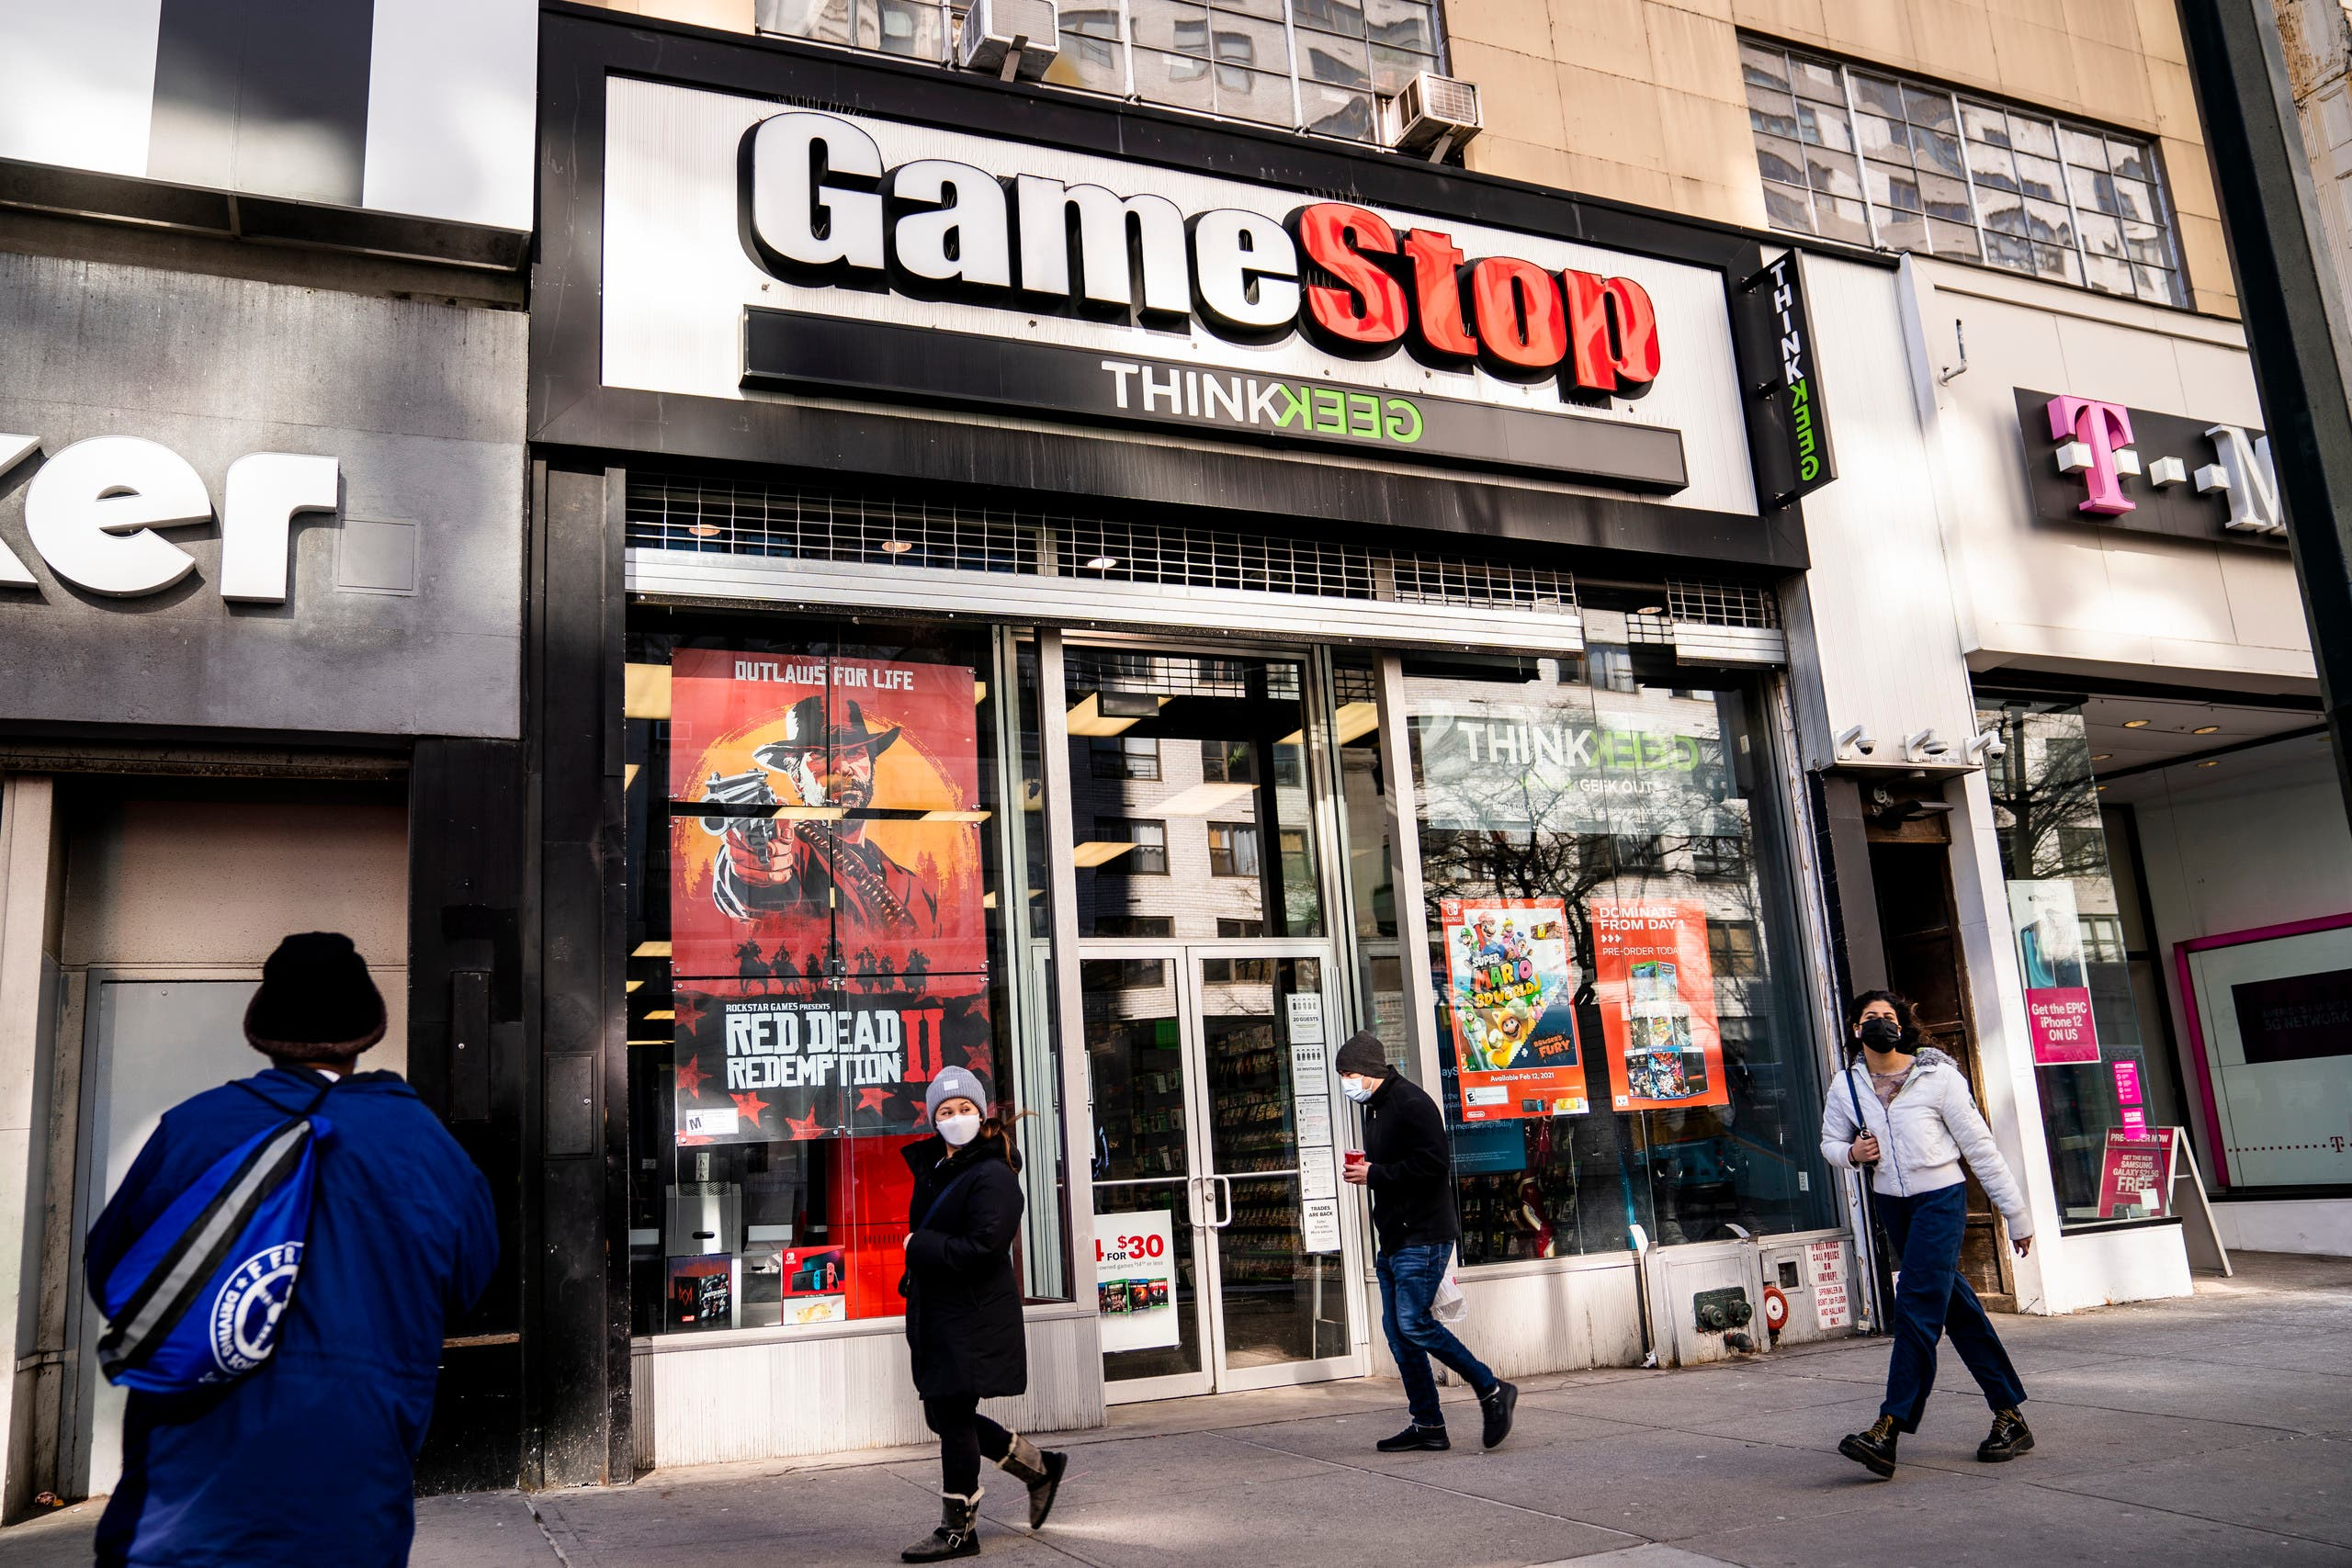 Pedestrians pass a GameStop store on 14th Street at Union Square, Thursday, January 28, 2021, in the Manhattan borough of New York. (AP)